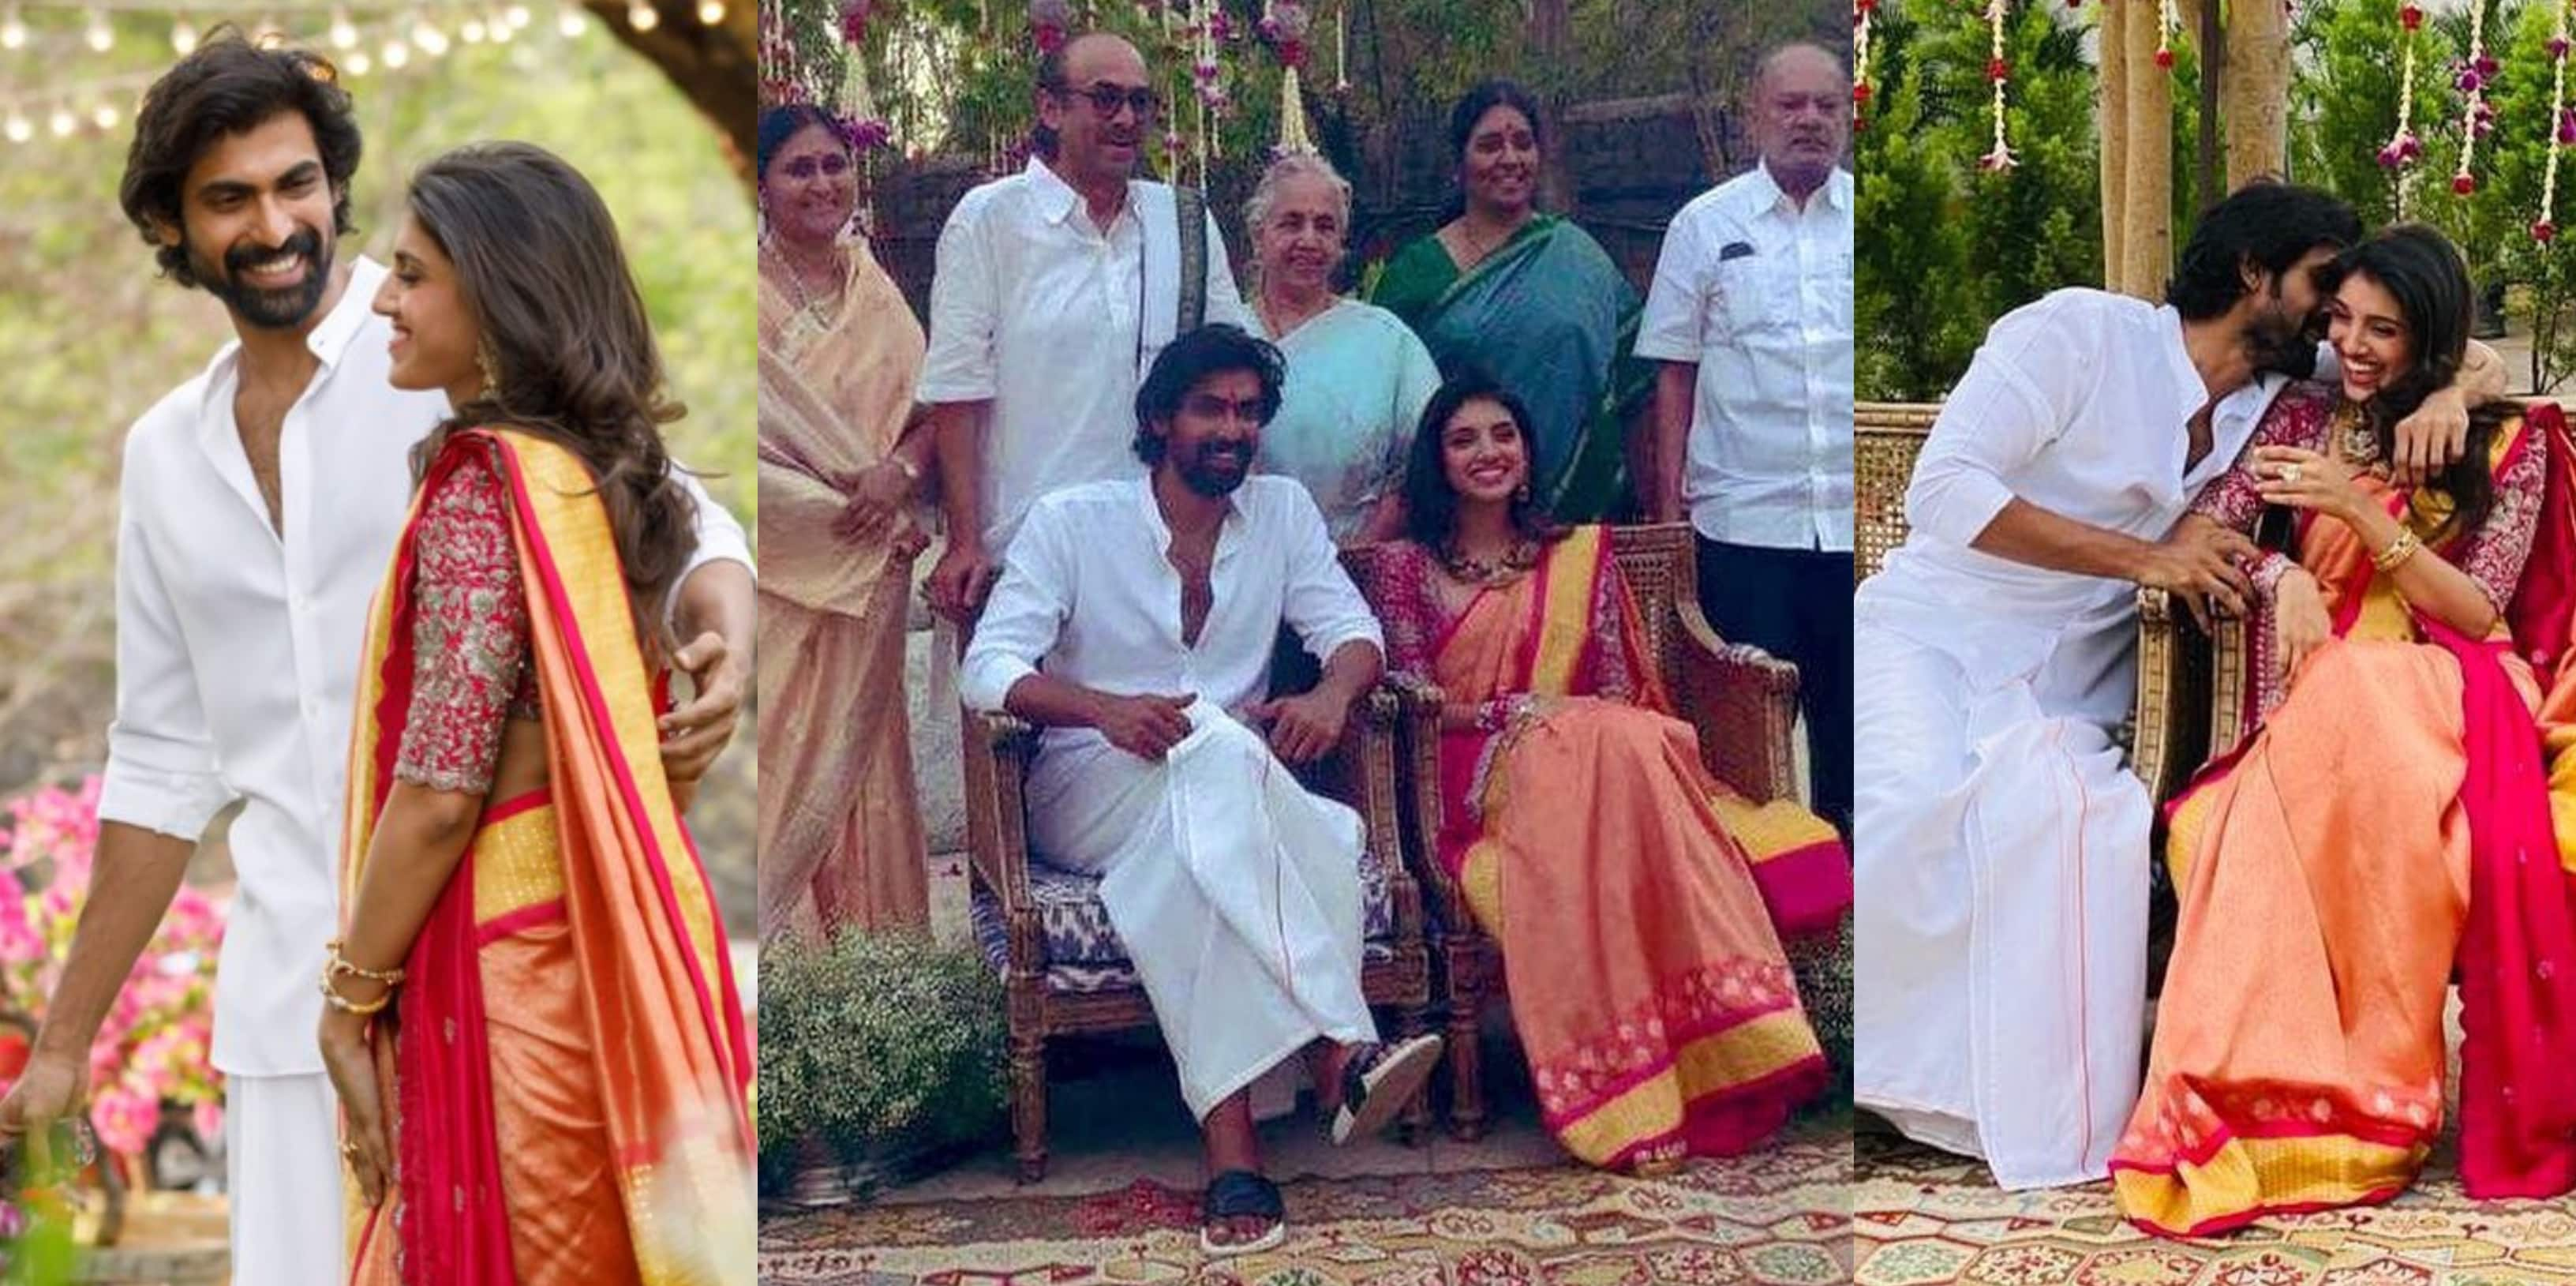 Rana Daggubati And Miheeka Bajaj's Roka Ceremony Is Perfectly Dreamy And These Pictures Are Proof